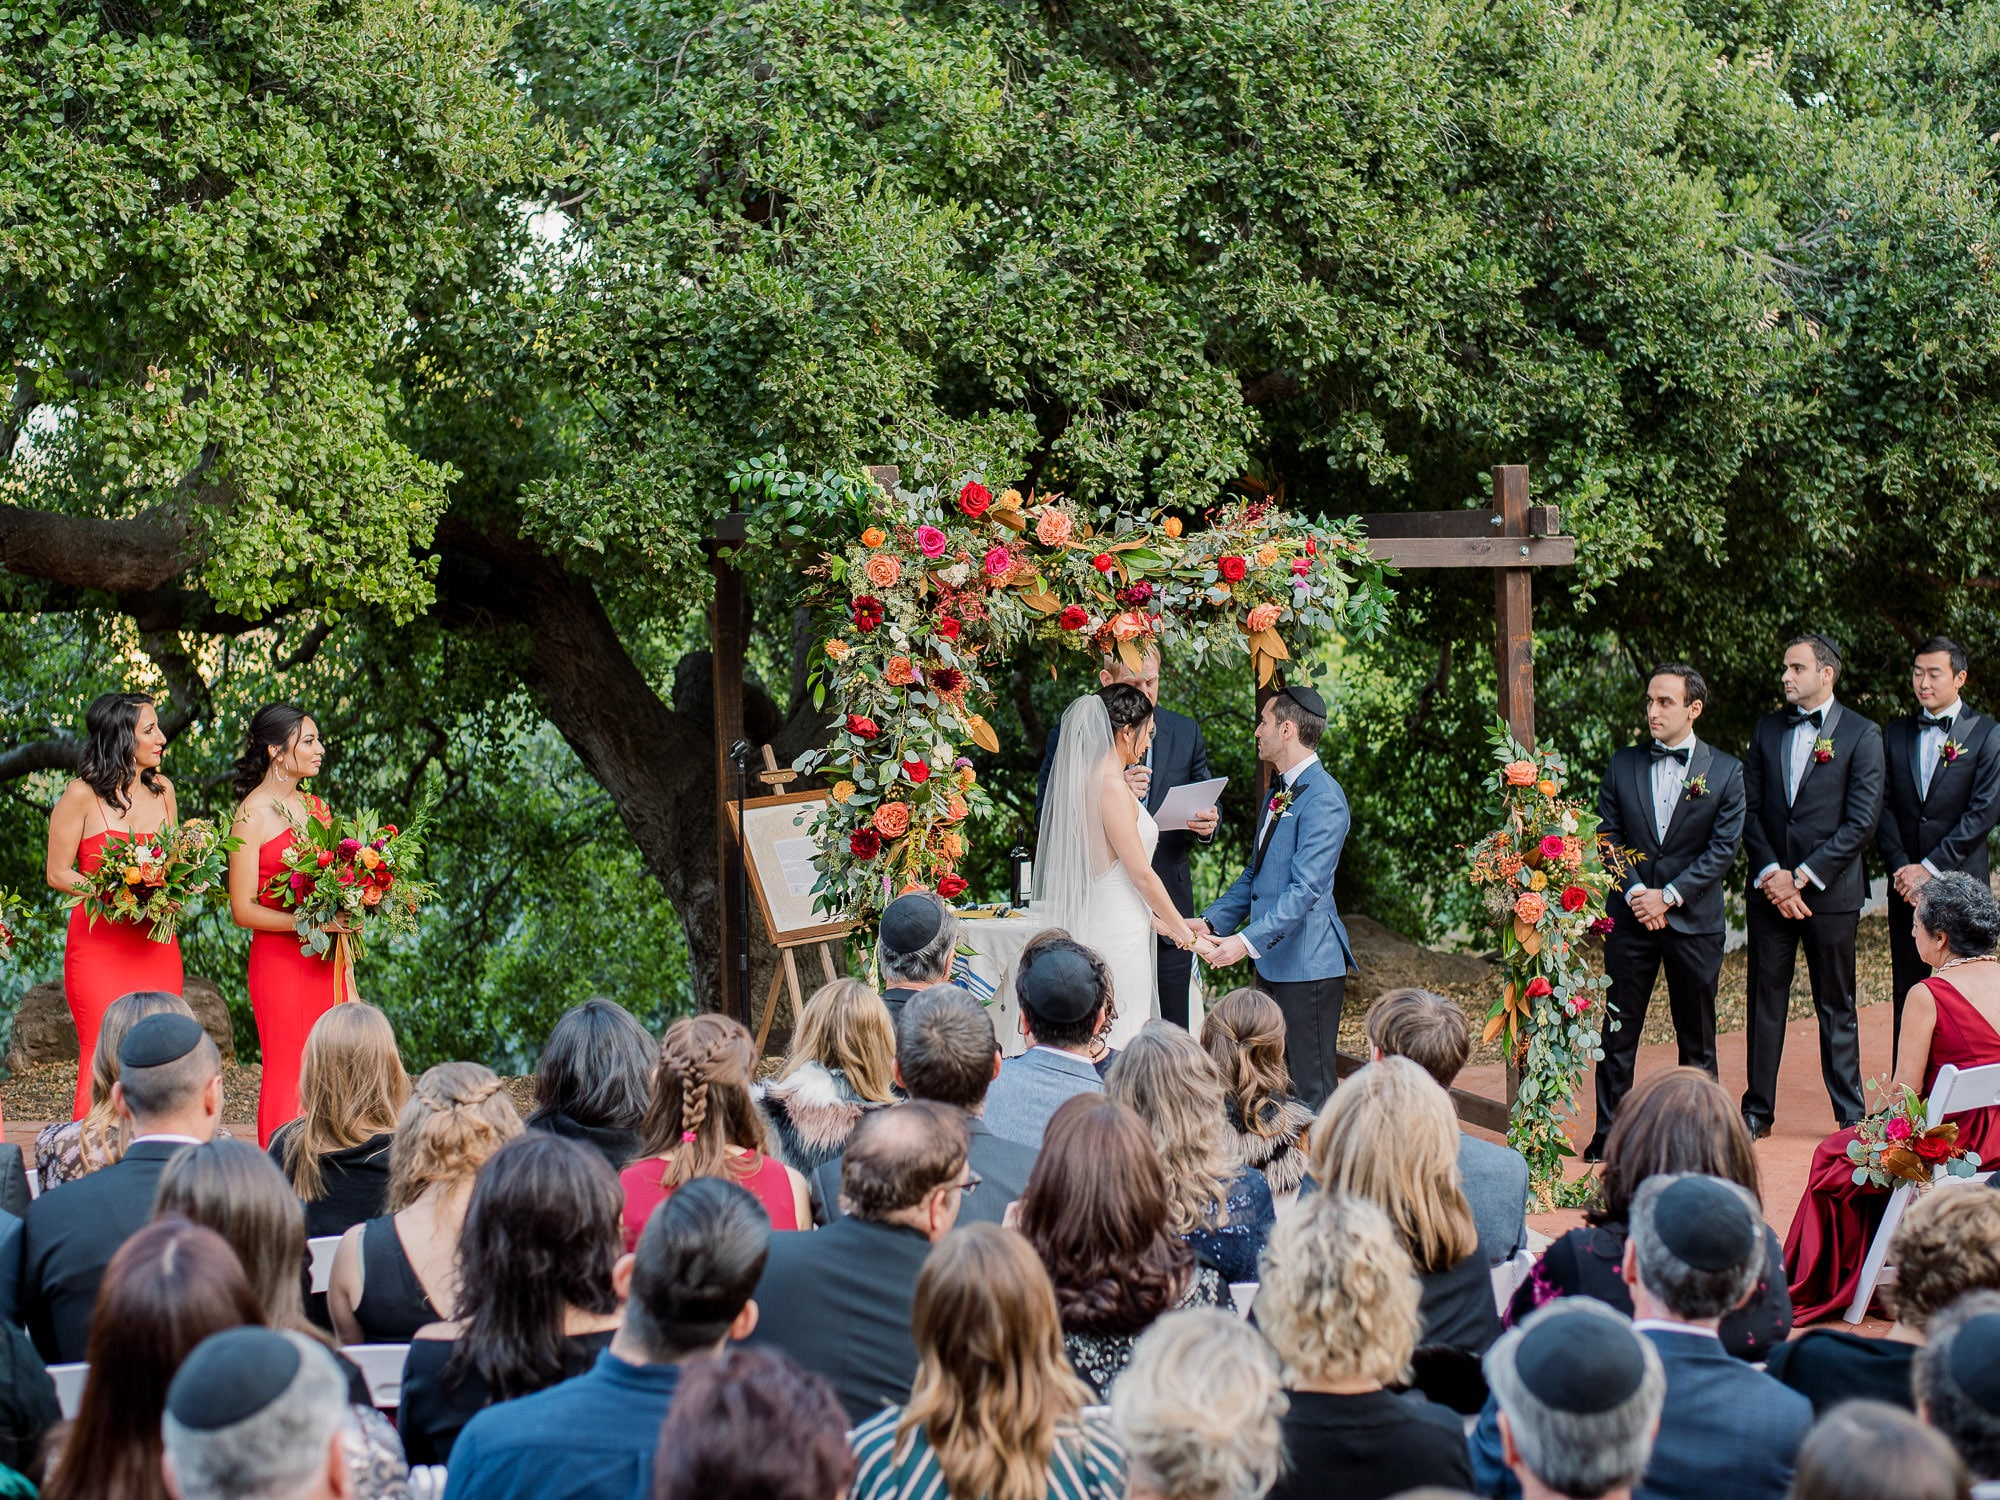 Wedding-Ceremony-Inspiration-Photos-Greg-Ross